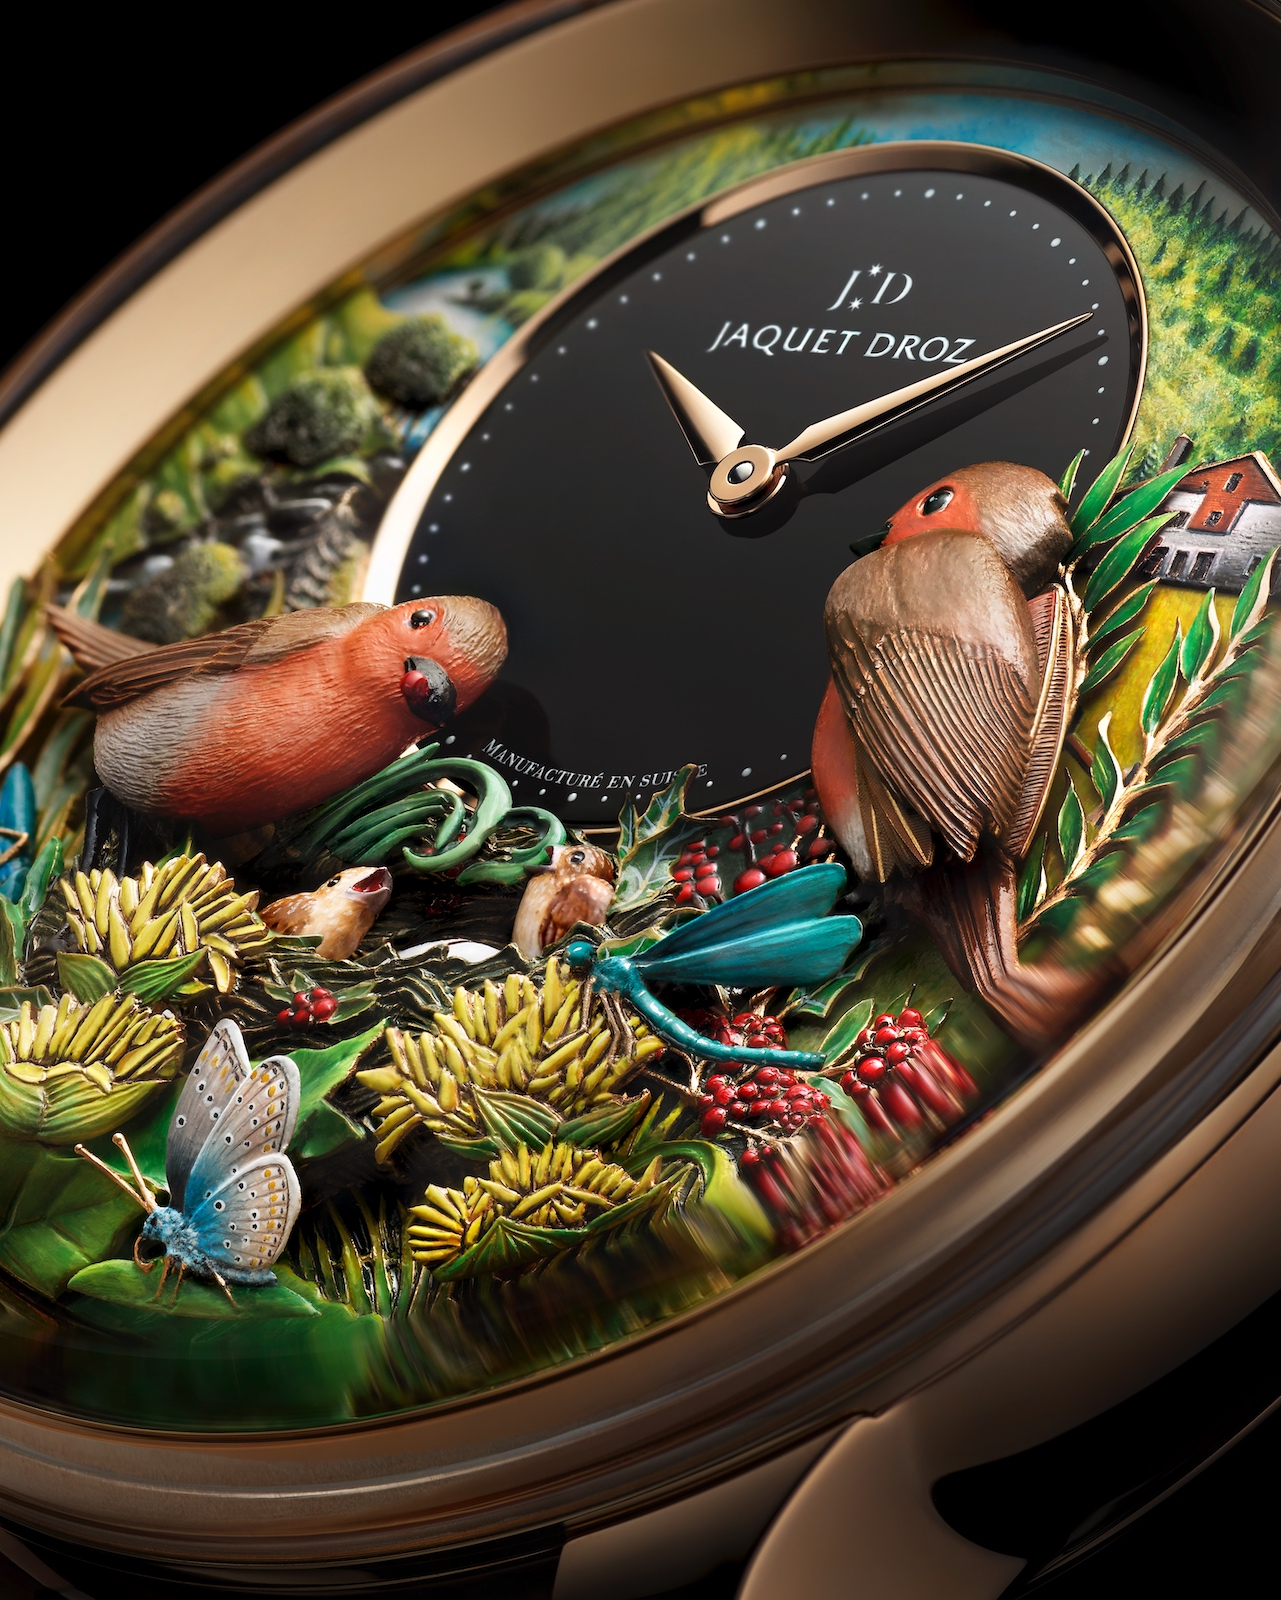 Jaquet Droz Bird Repeater 300th Anniversary Edition - detail 2